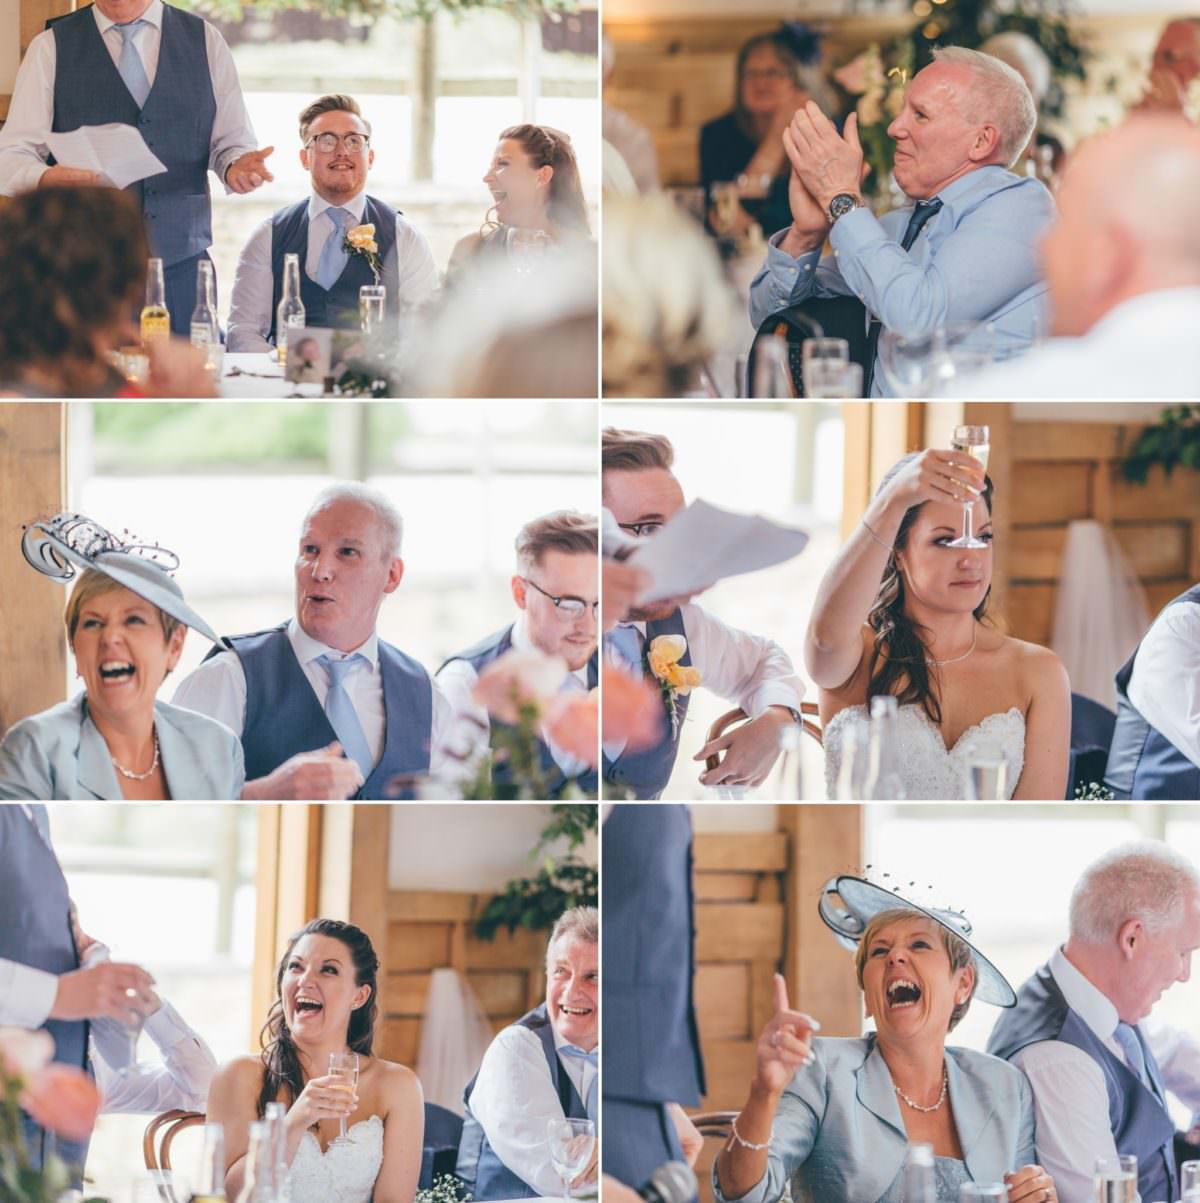 cripps_barn_gloucesterhsire_welsh_wedding_photographer_rachel_lambert_photography_jordan_amy_ 121